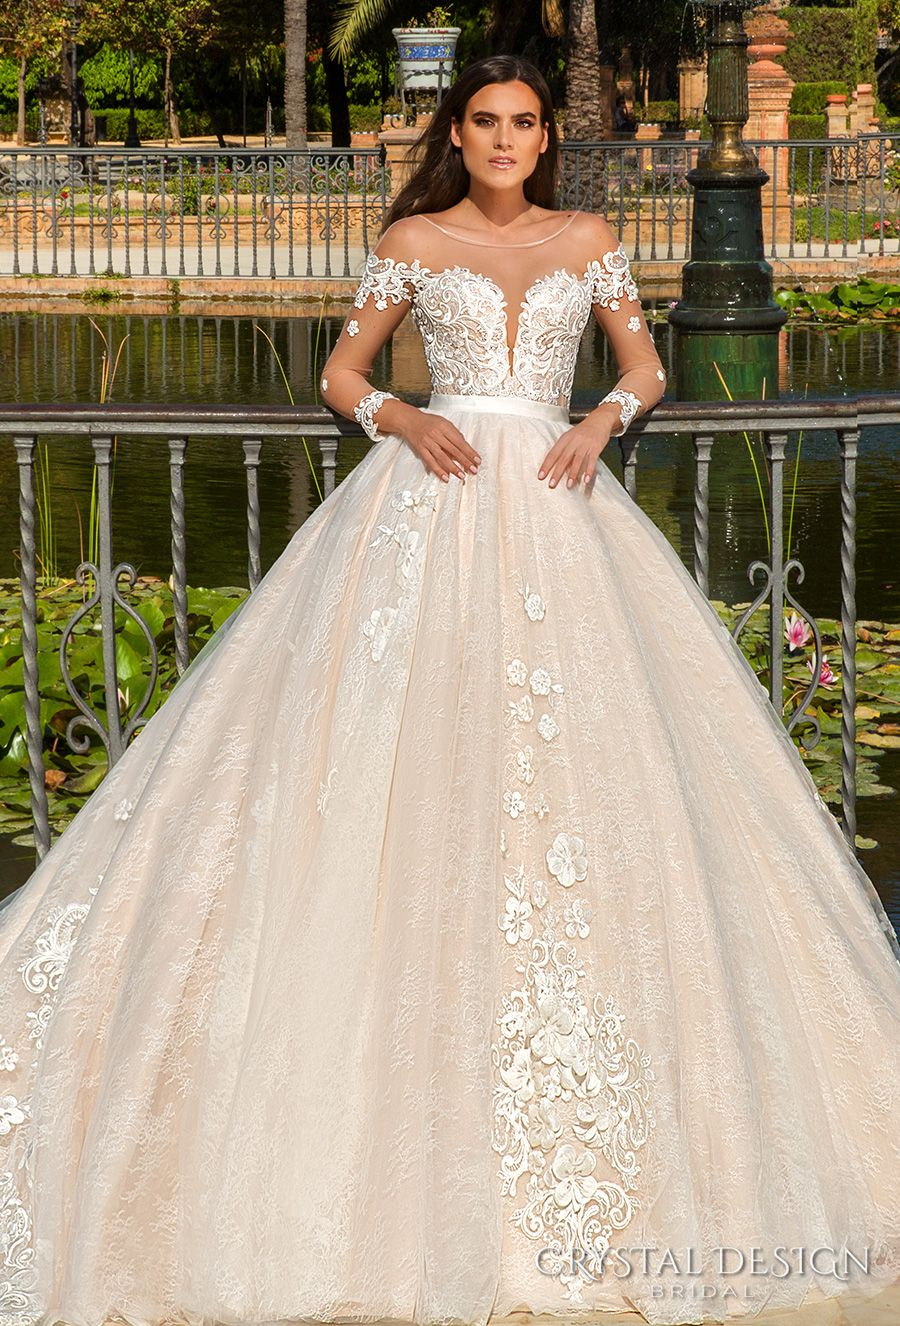 Beautiful wedding dresses from the 2017 crystal design for Romantic wedding dress designers